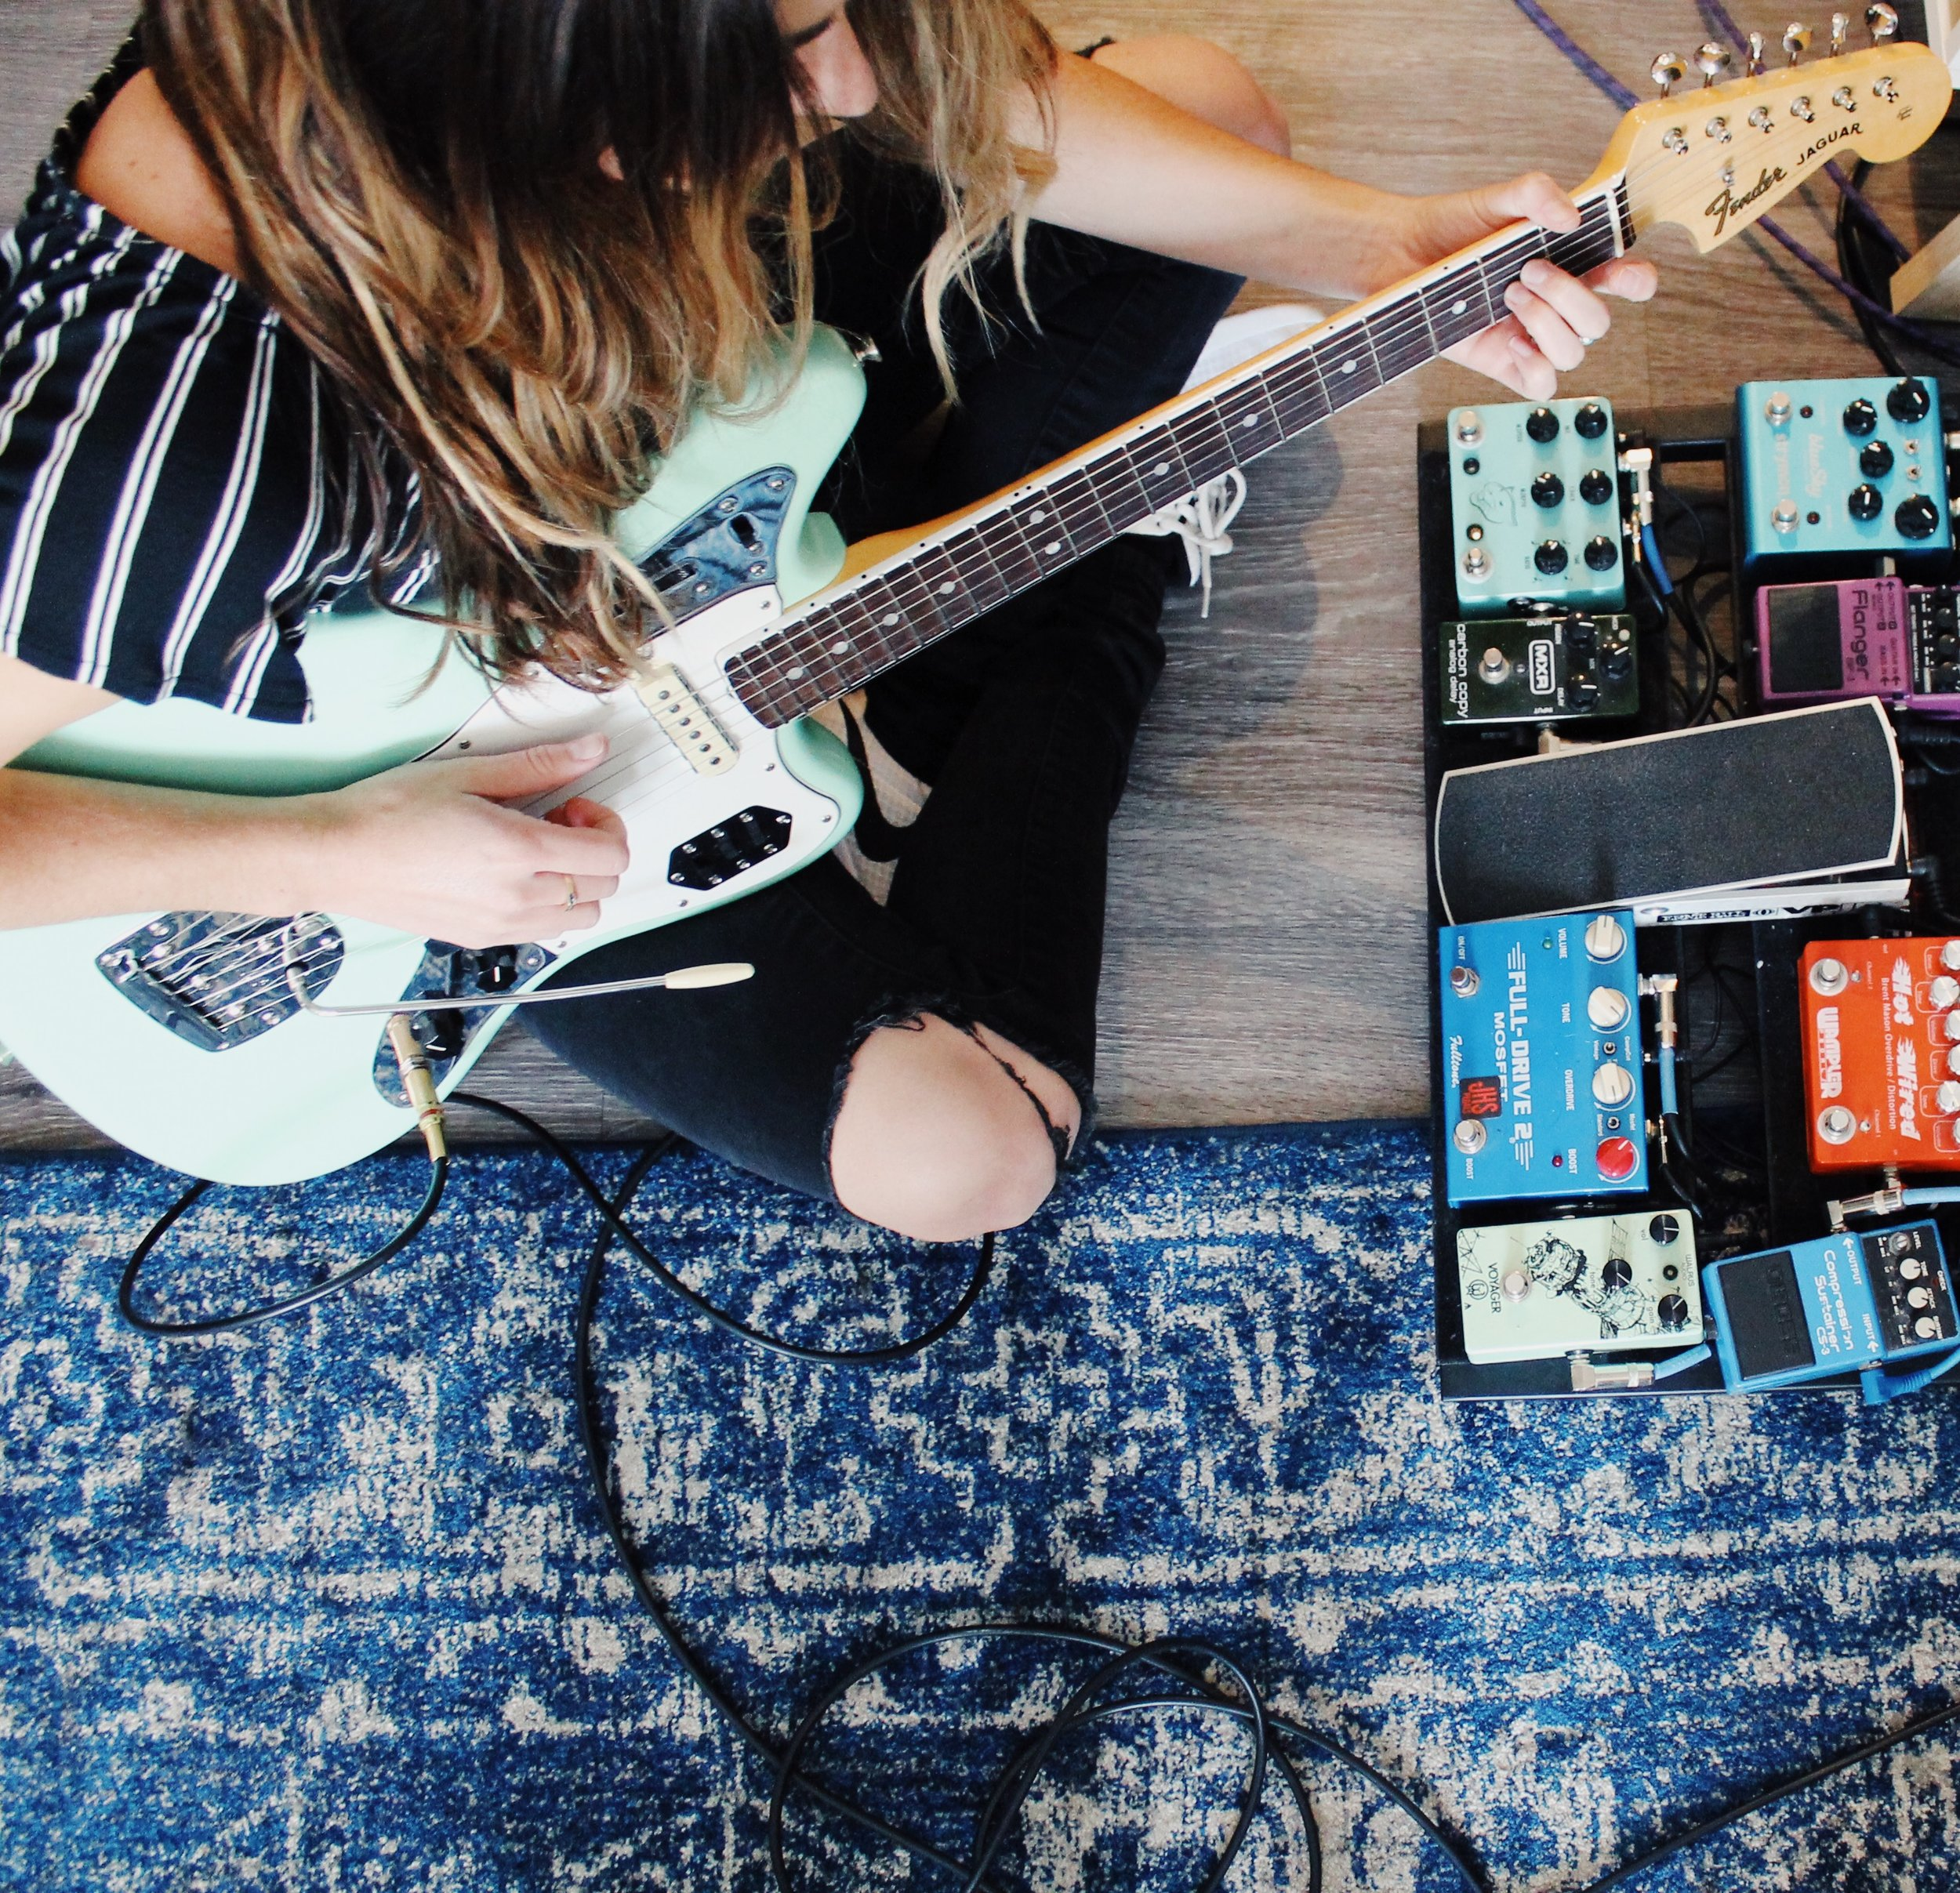 Get Gear recommendations - Check out my gear guide to learn more about amps and pedals!